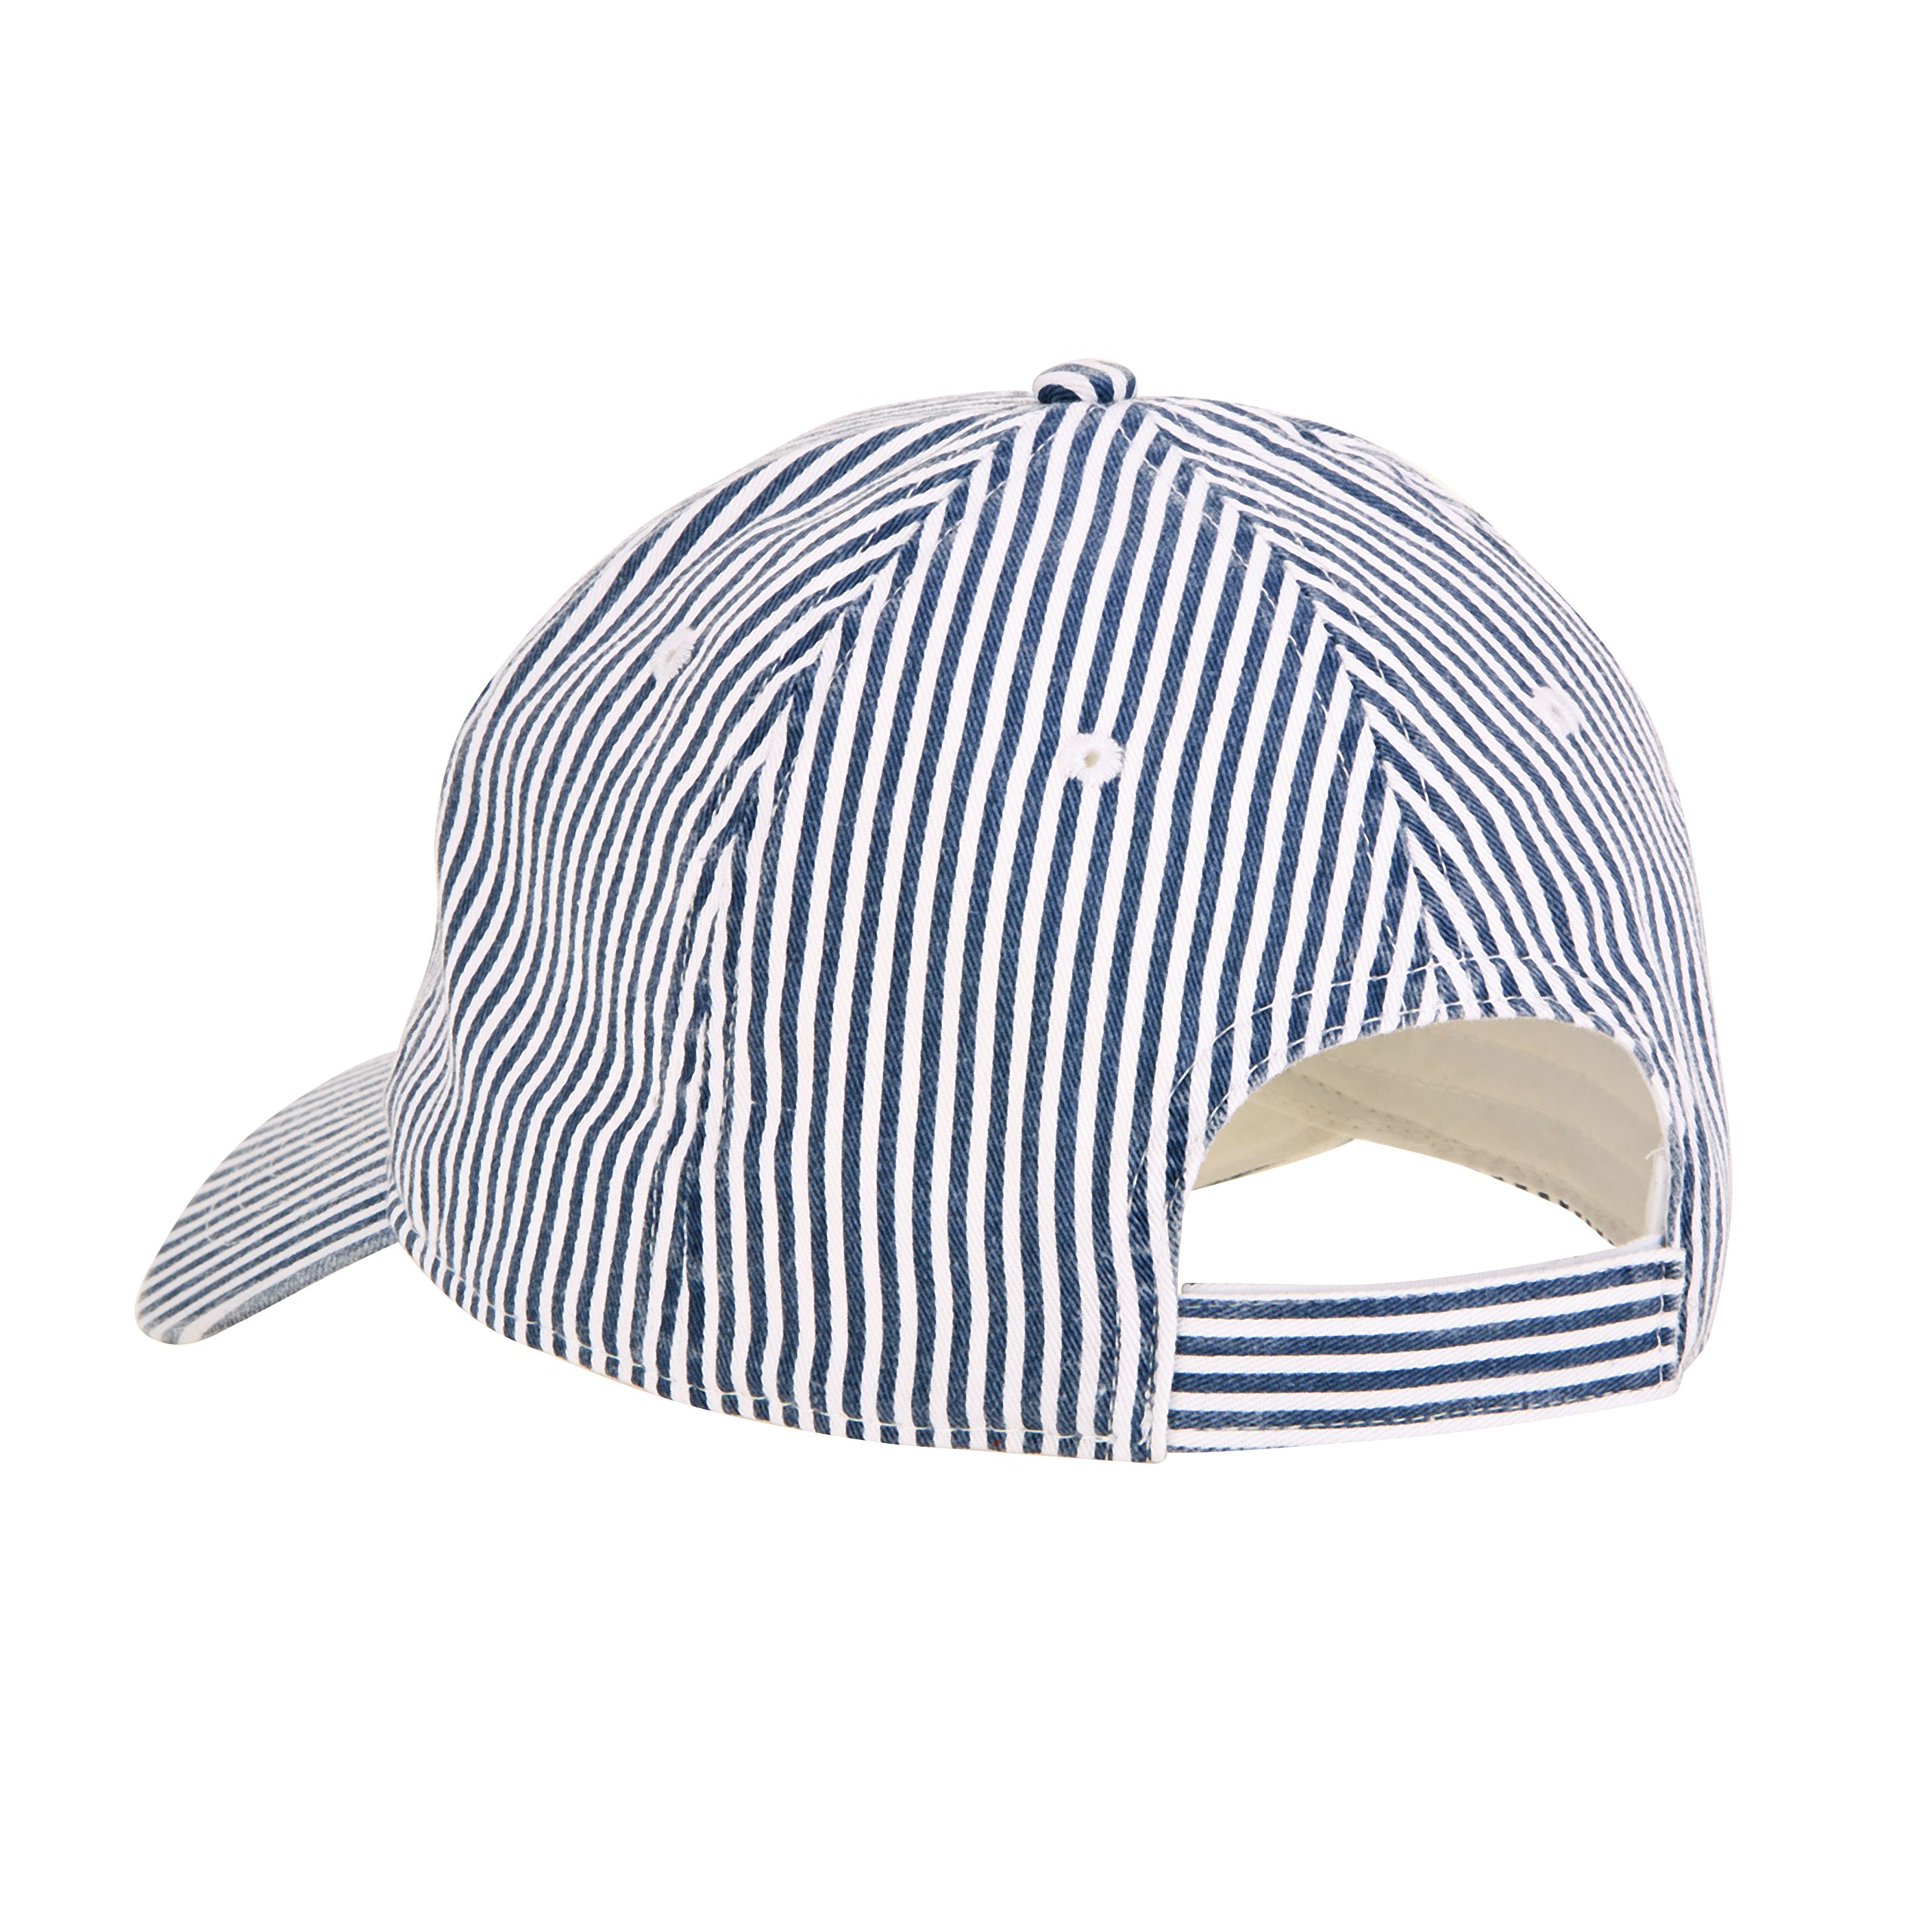 C3 Store Pair of Women's Golf caps, Sea Grean & Blue/White Stripe